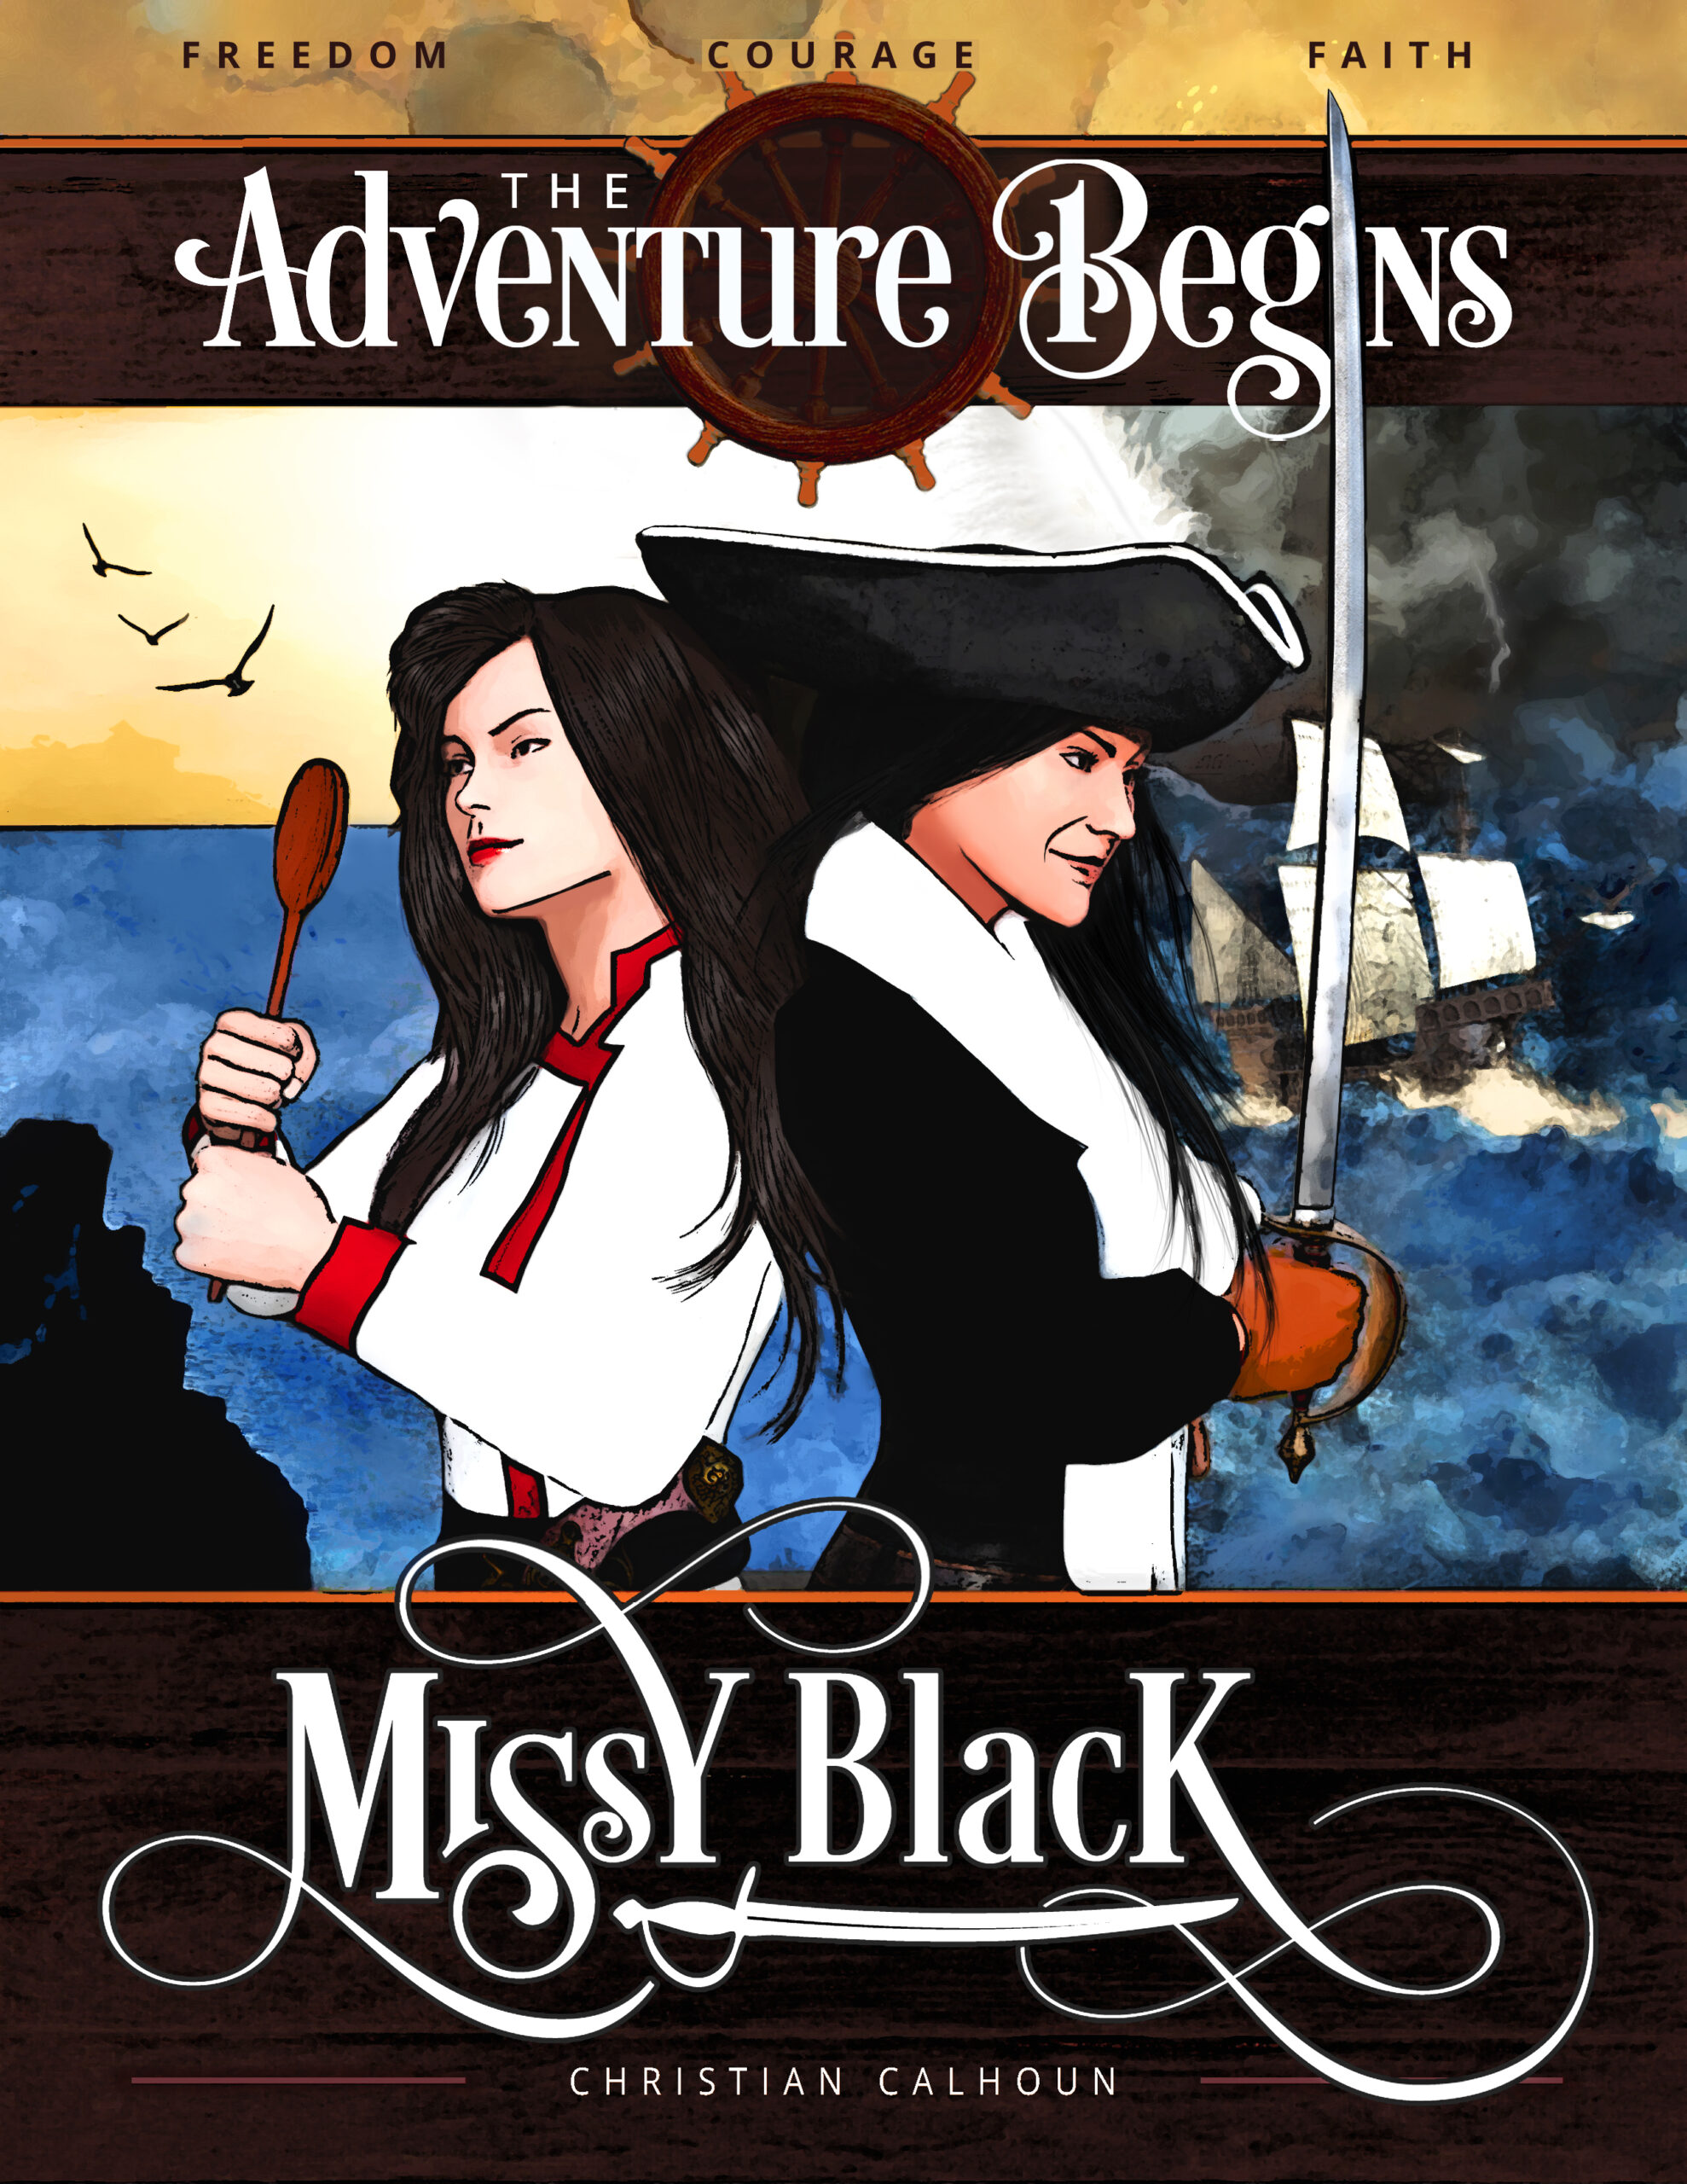 Missy Black Book Cover Design Novel Series